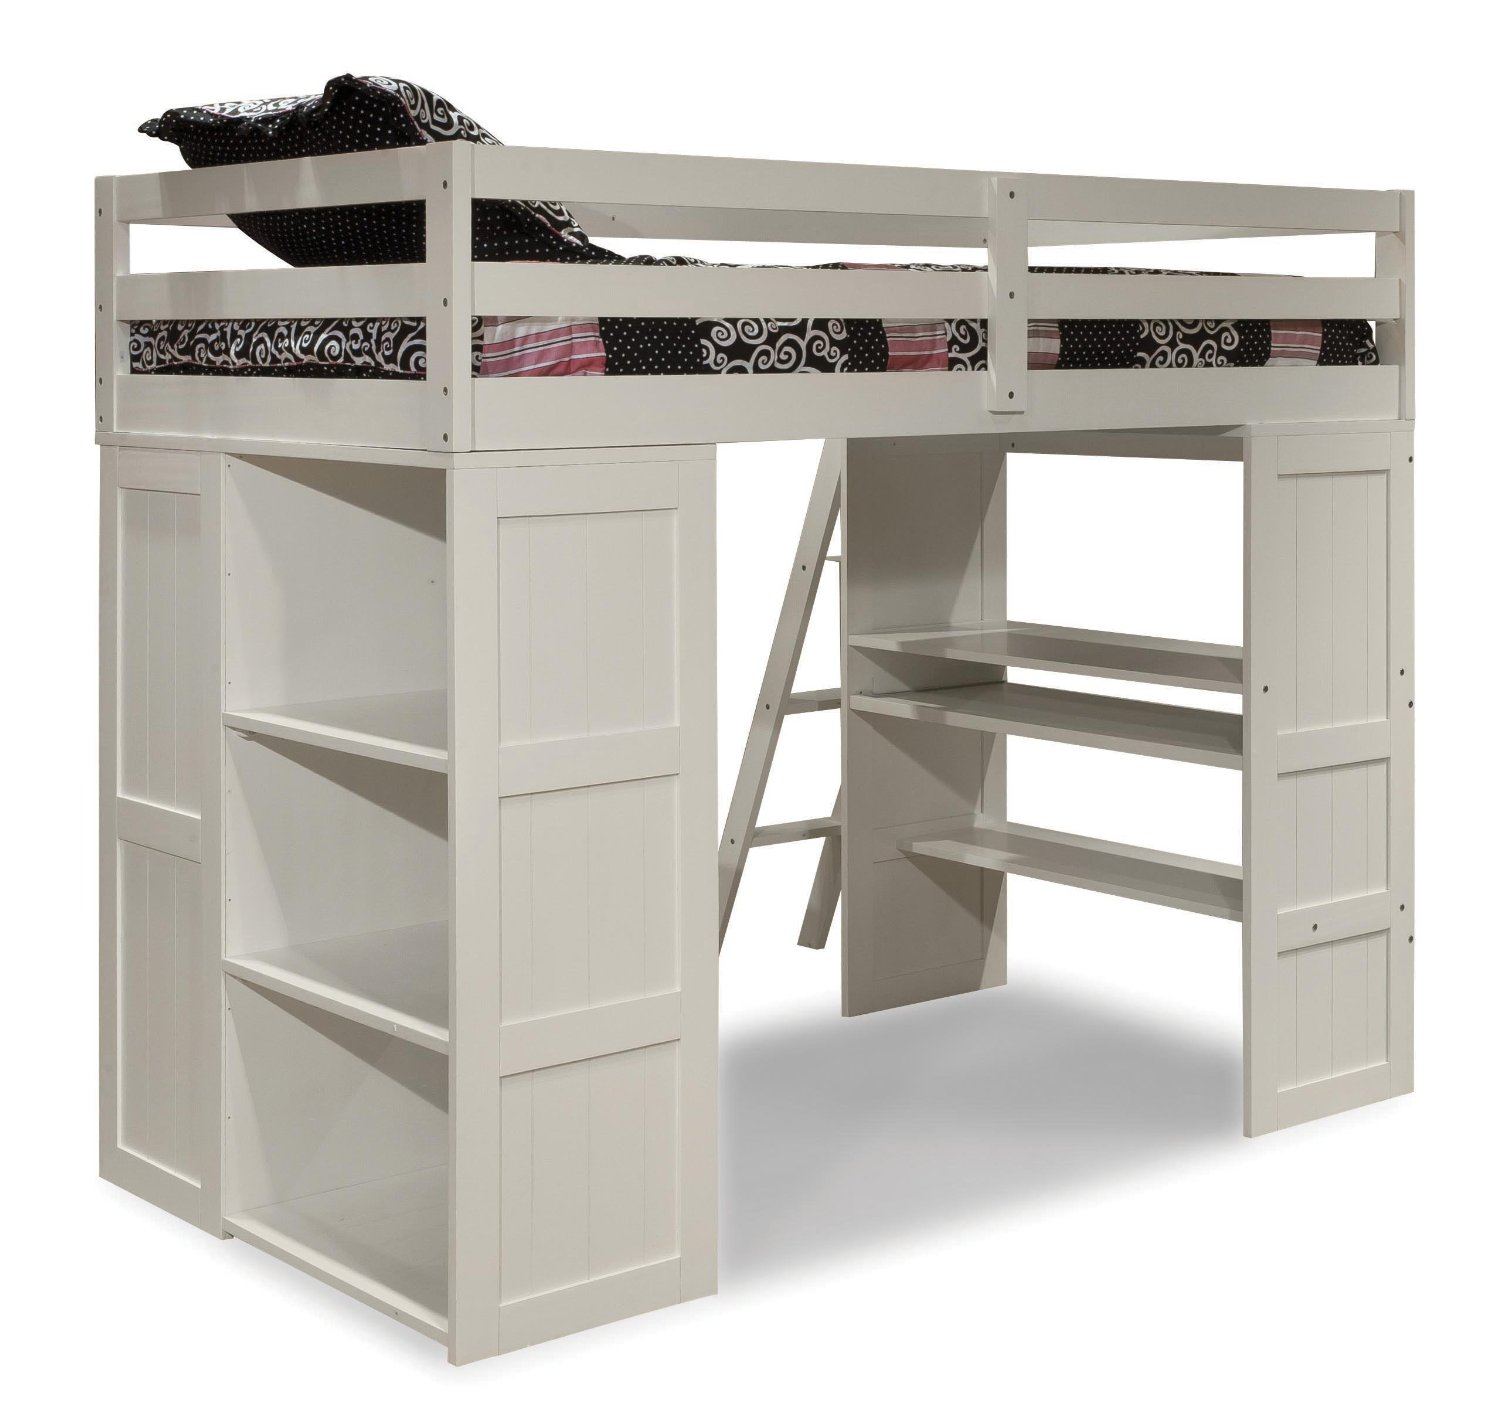 Outstanding Wood Junior Loft Bed | Pretty Canwood Loft Bed